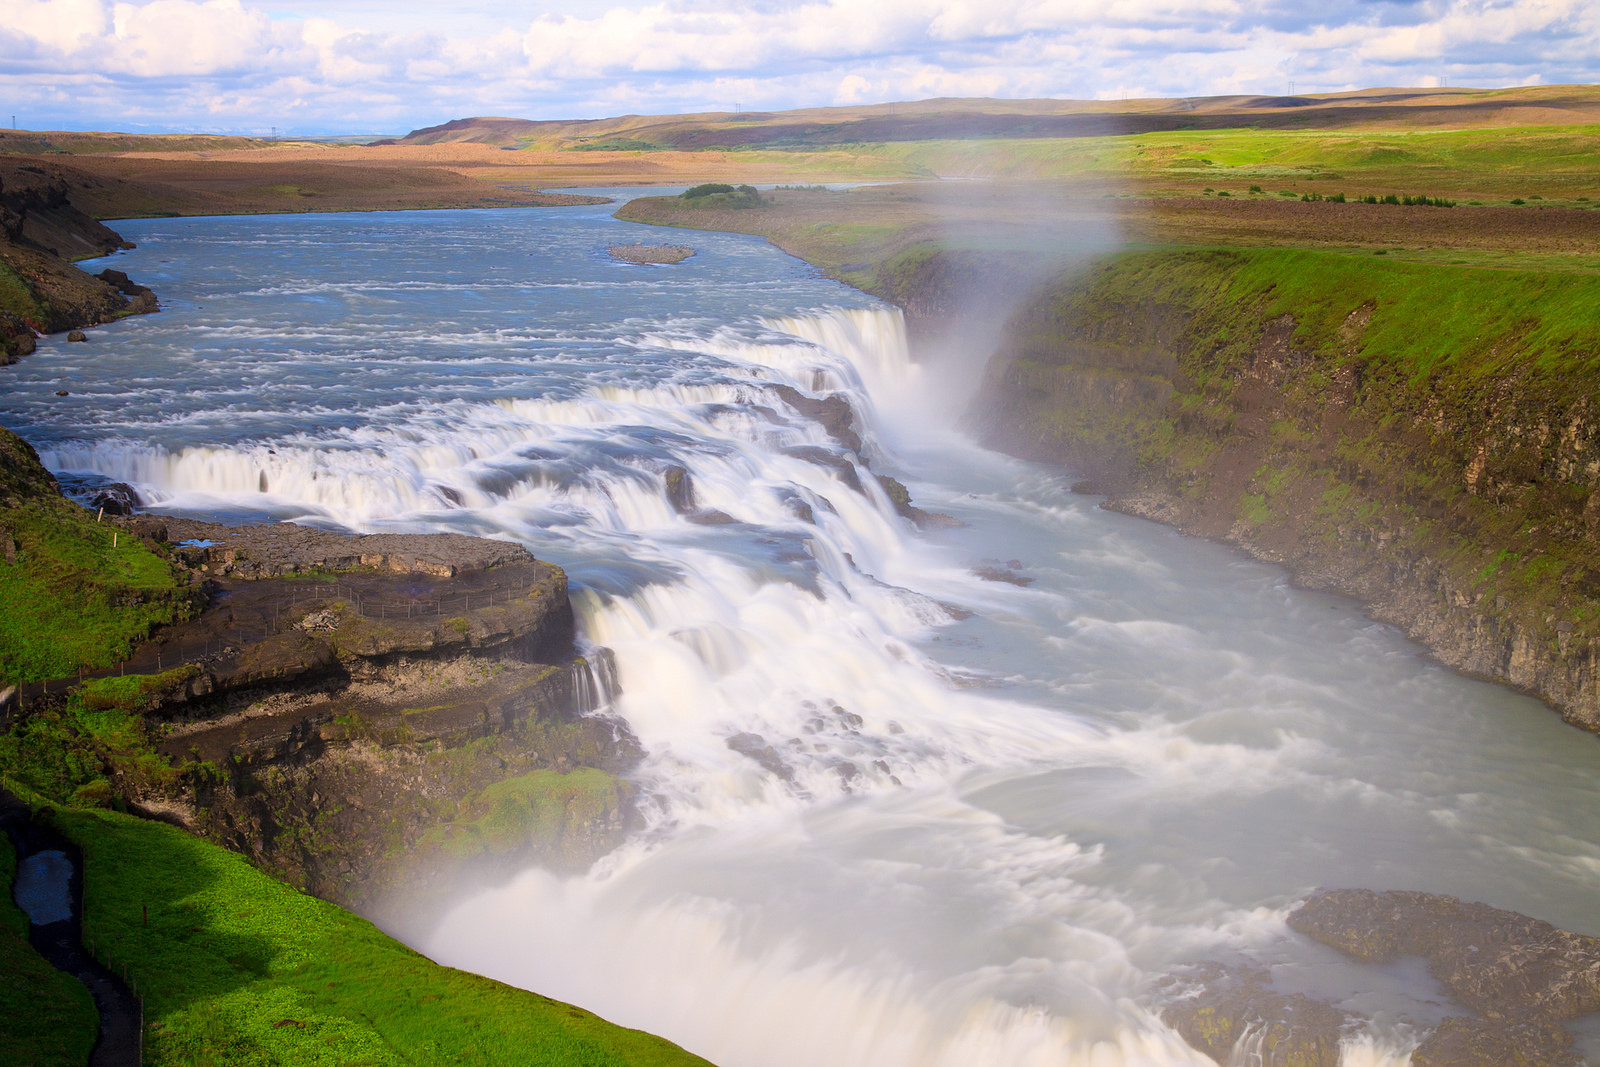 Gulfoss, Iceland. The Great Watefall. Photo: Michael Ransburg/Flickr.